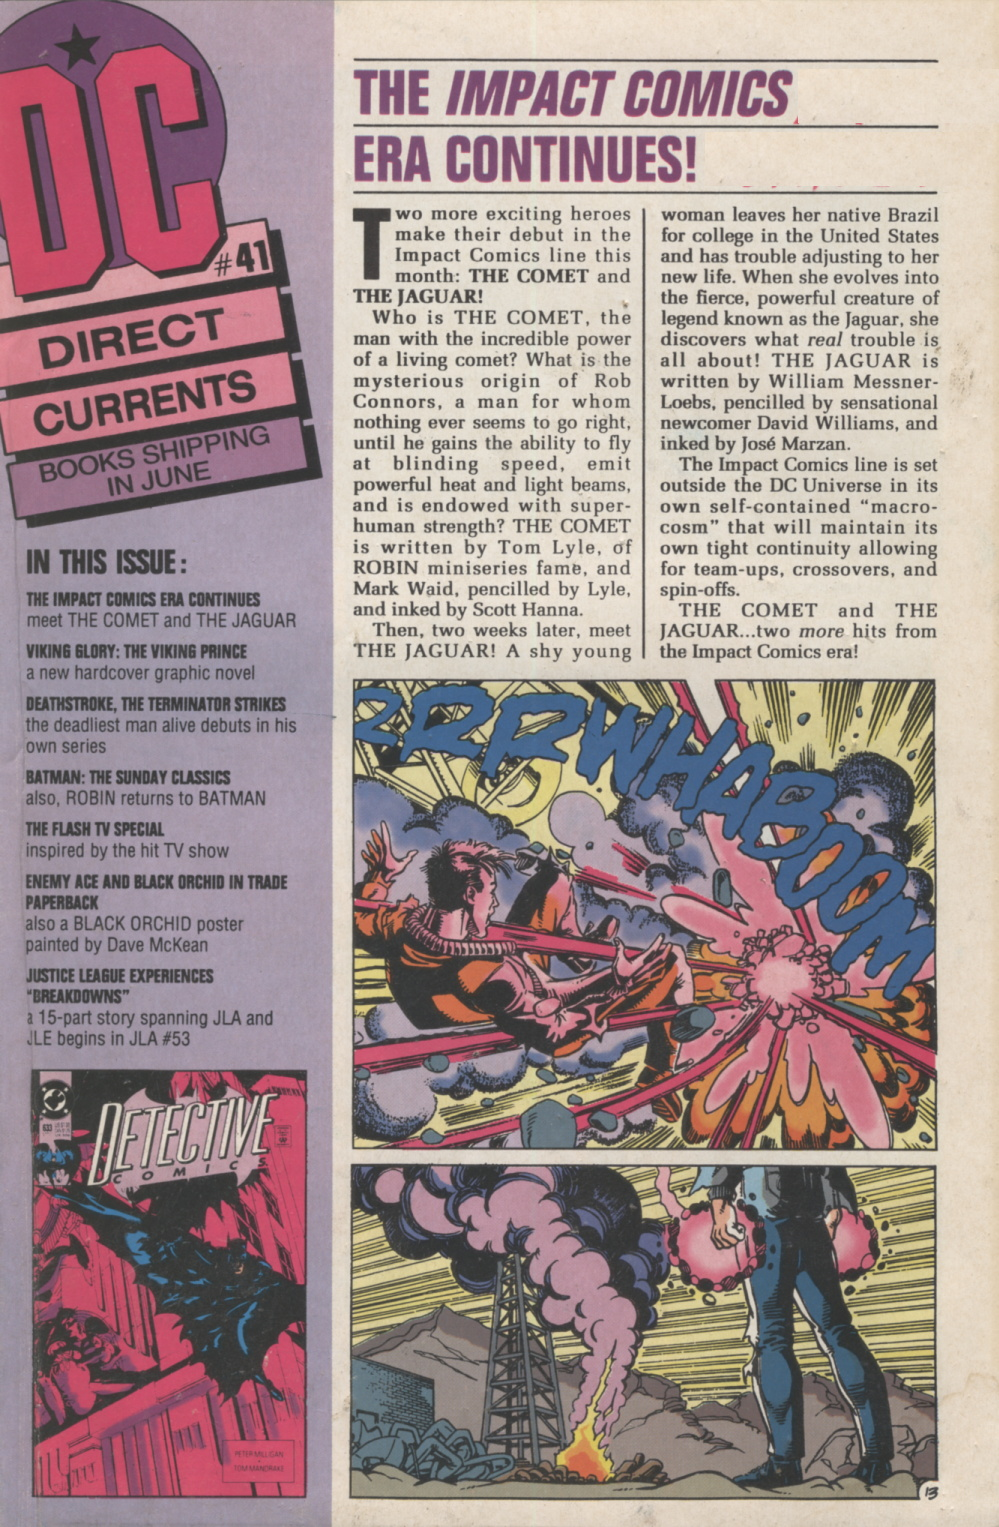 Time Capsule: DC Direct Currents 41 June 1991